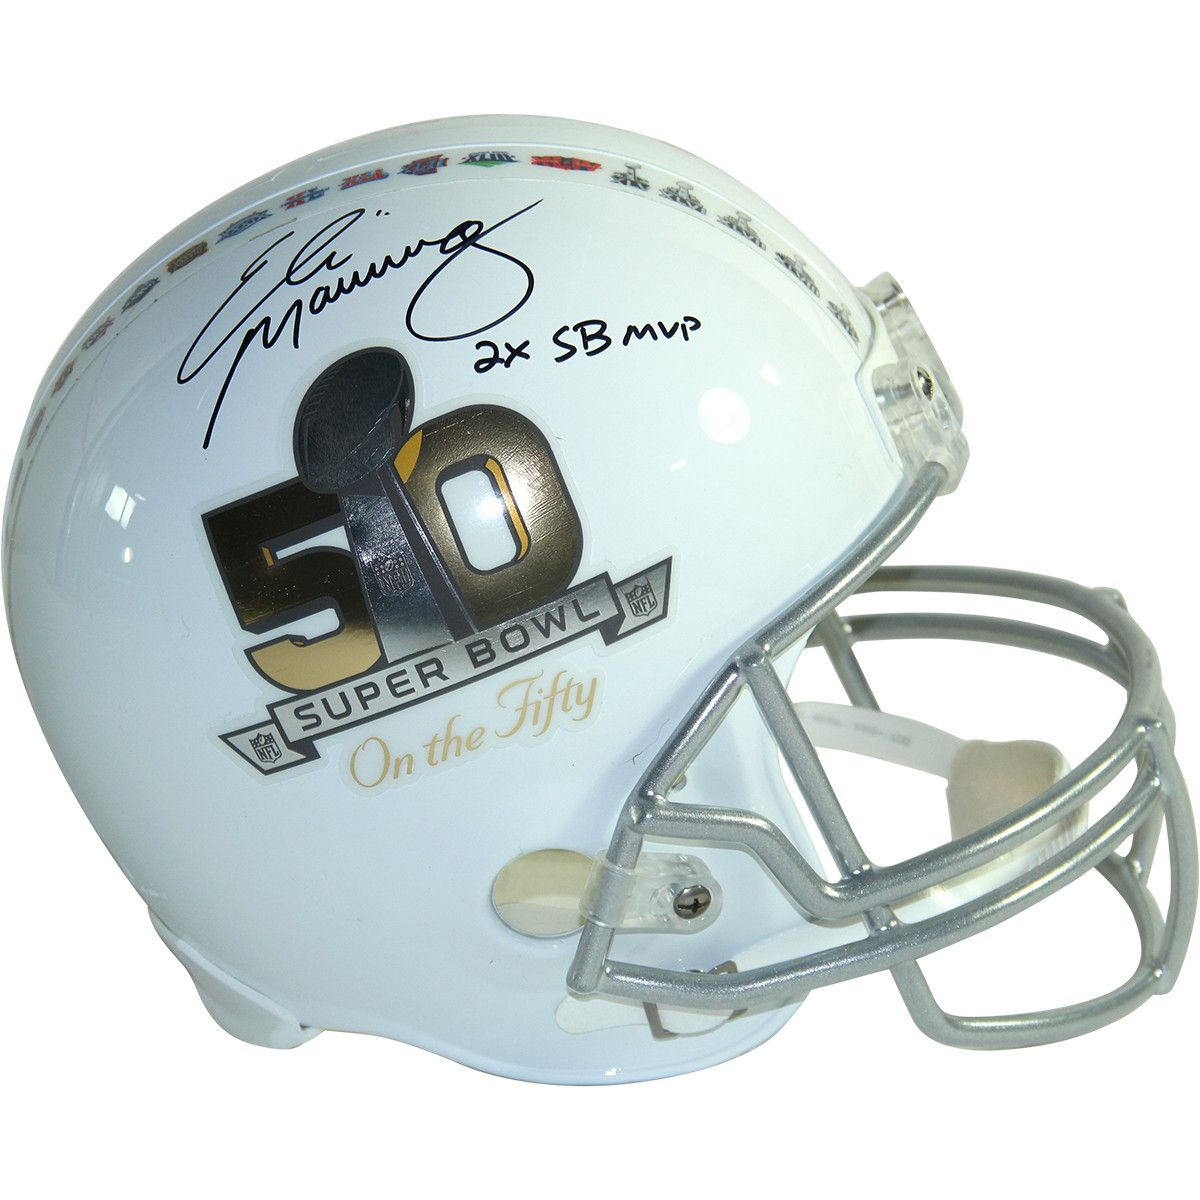 ELI MANNING Signed Riddell Super Bowl 50  On the Fifty  Commemorative  Deluxe… 1ddff5c1c